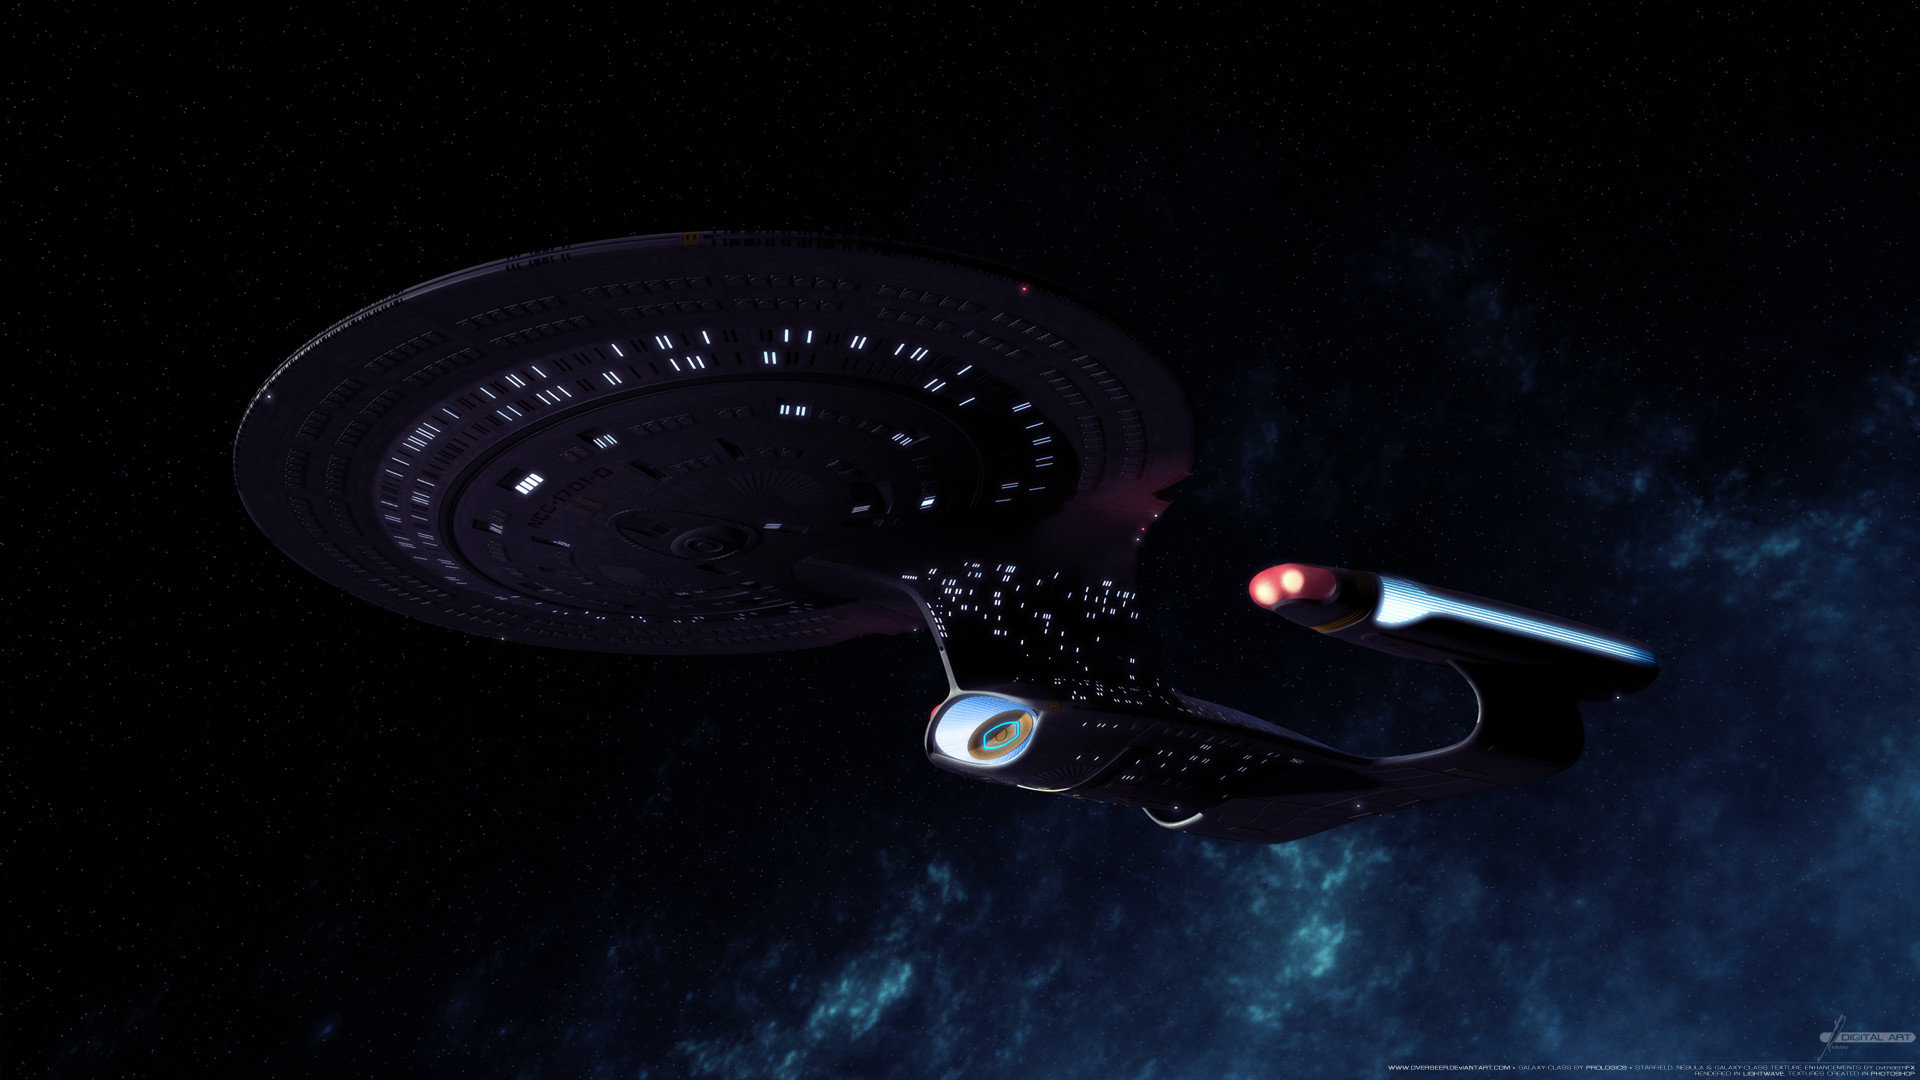 Best Star Trek The Next Generation Wallpaper Id 446171 For High